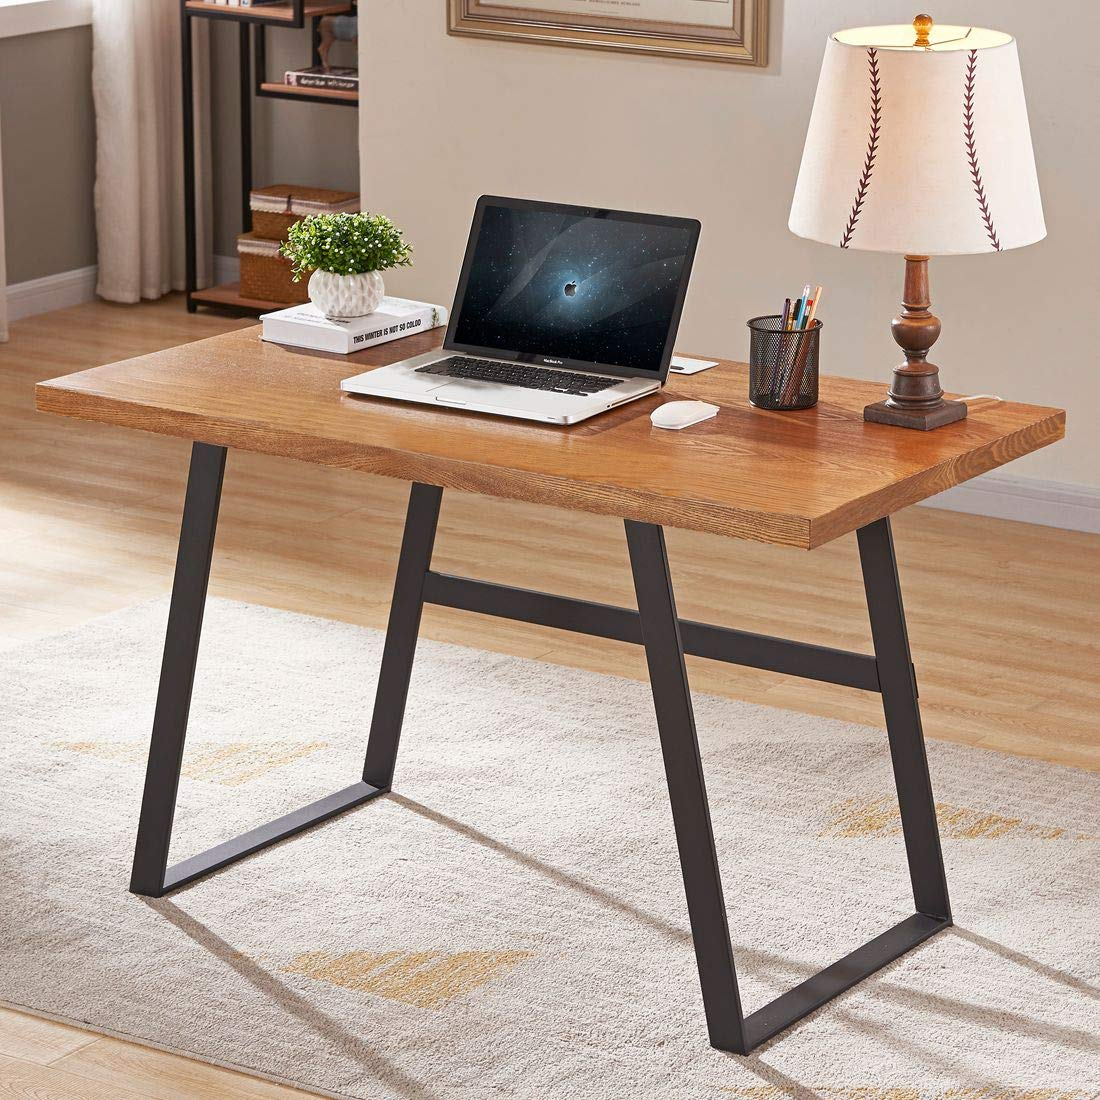 BON AUGURE Wood Computer Desk for Home Office, Rustic Writing Desk, Industrial Desk Table (47 inch, Mahogany) by BON AUGURE